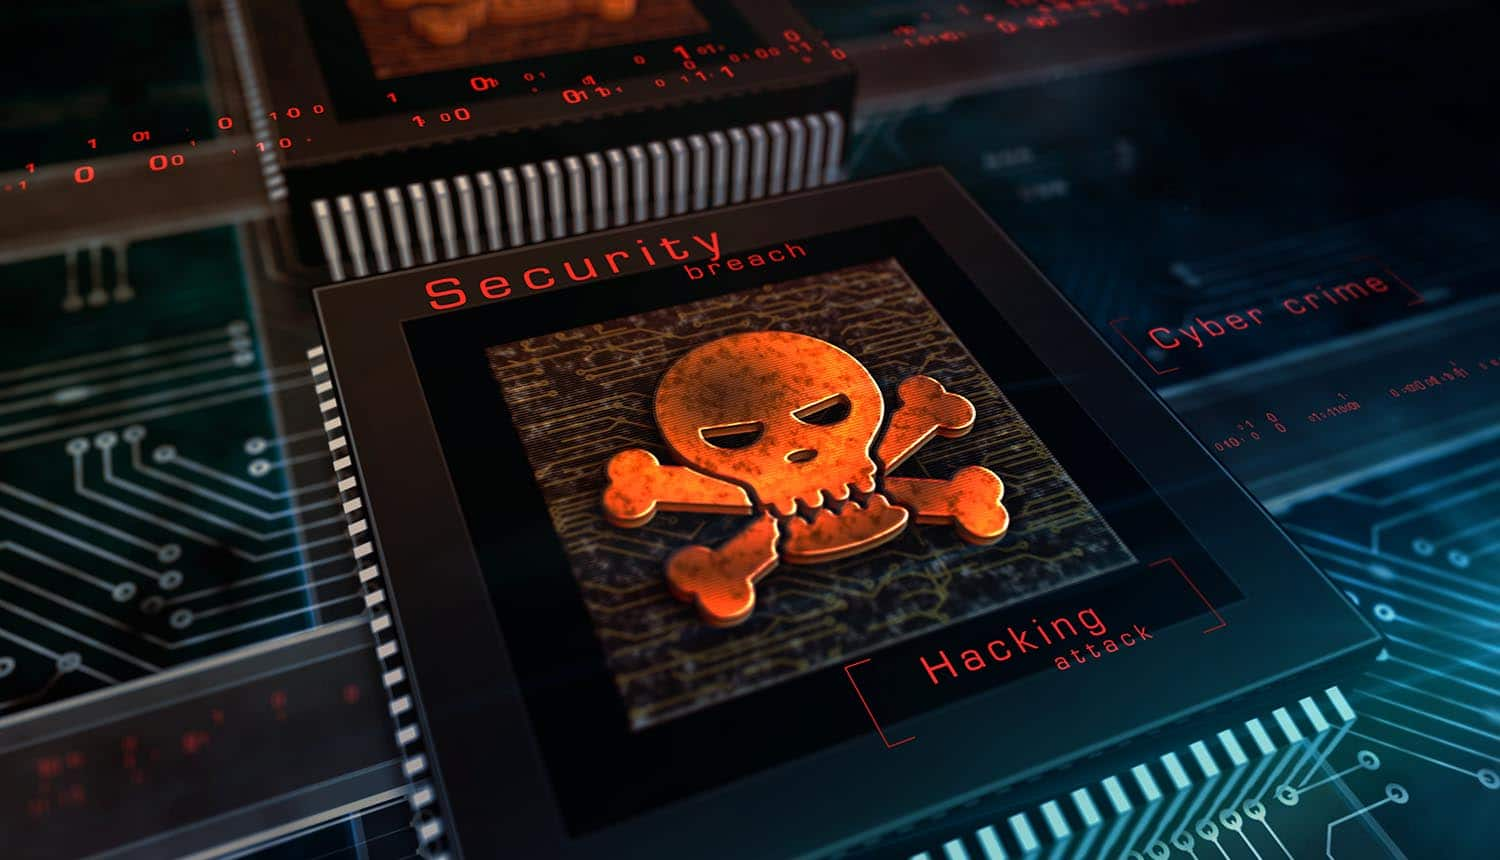 Skull symbol on computer chip showing SolarWinds backdoor planted by Russian hackers